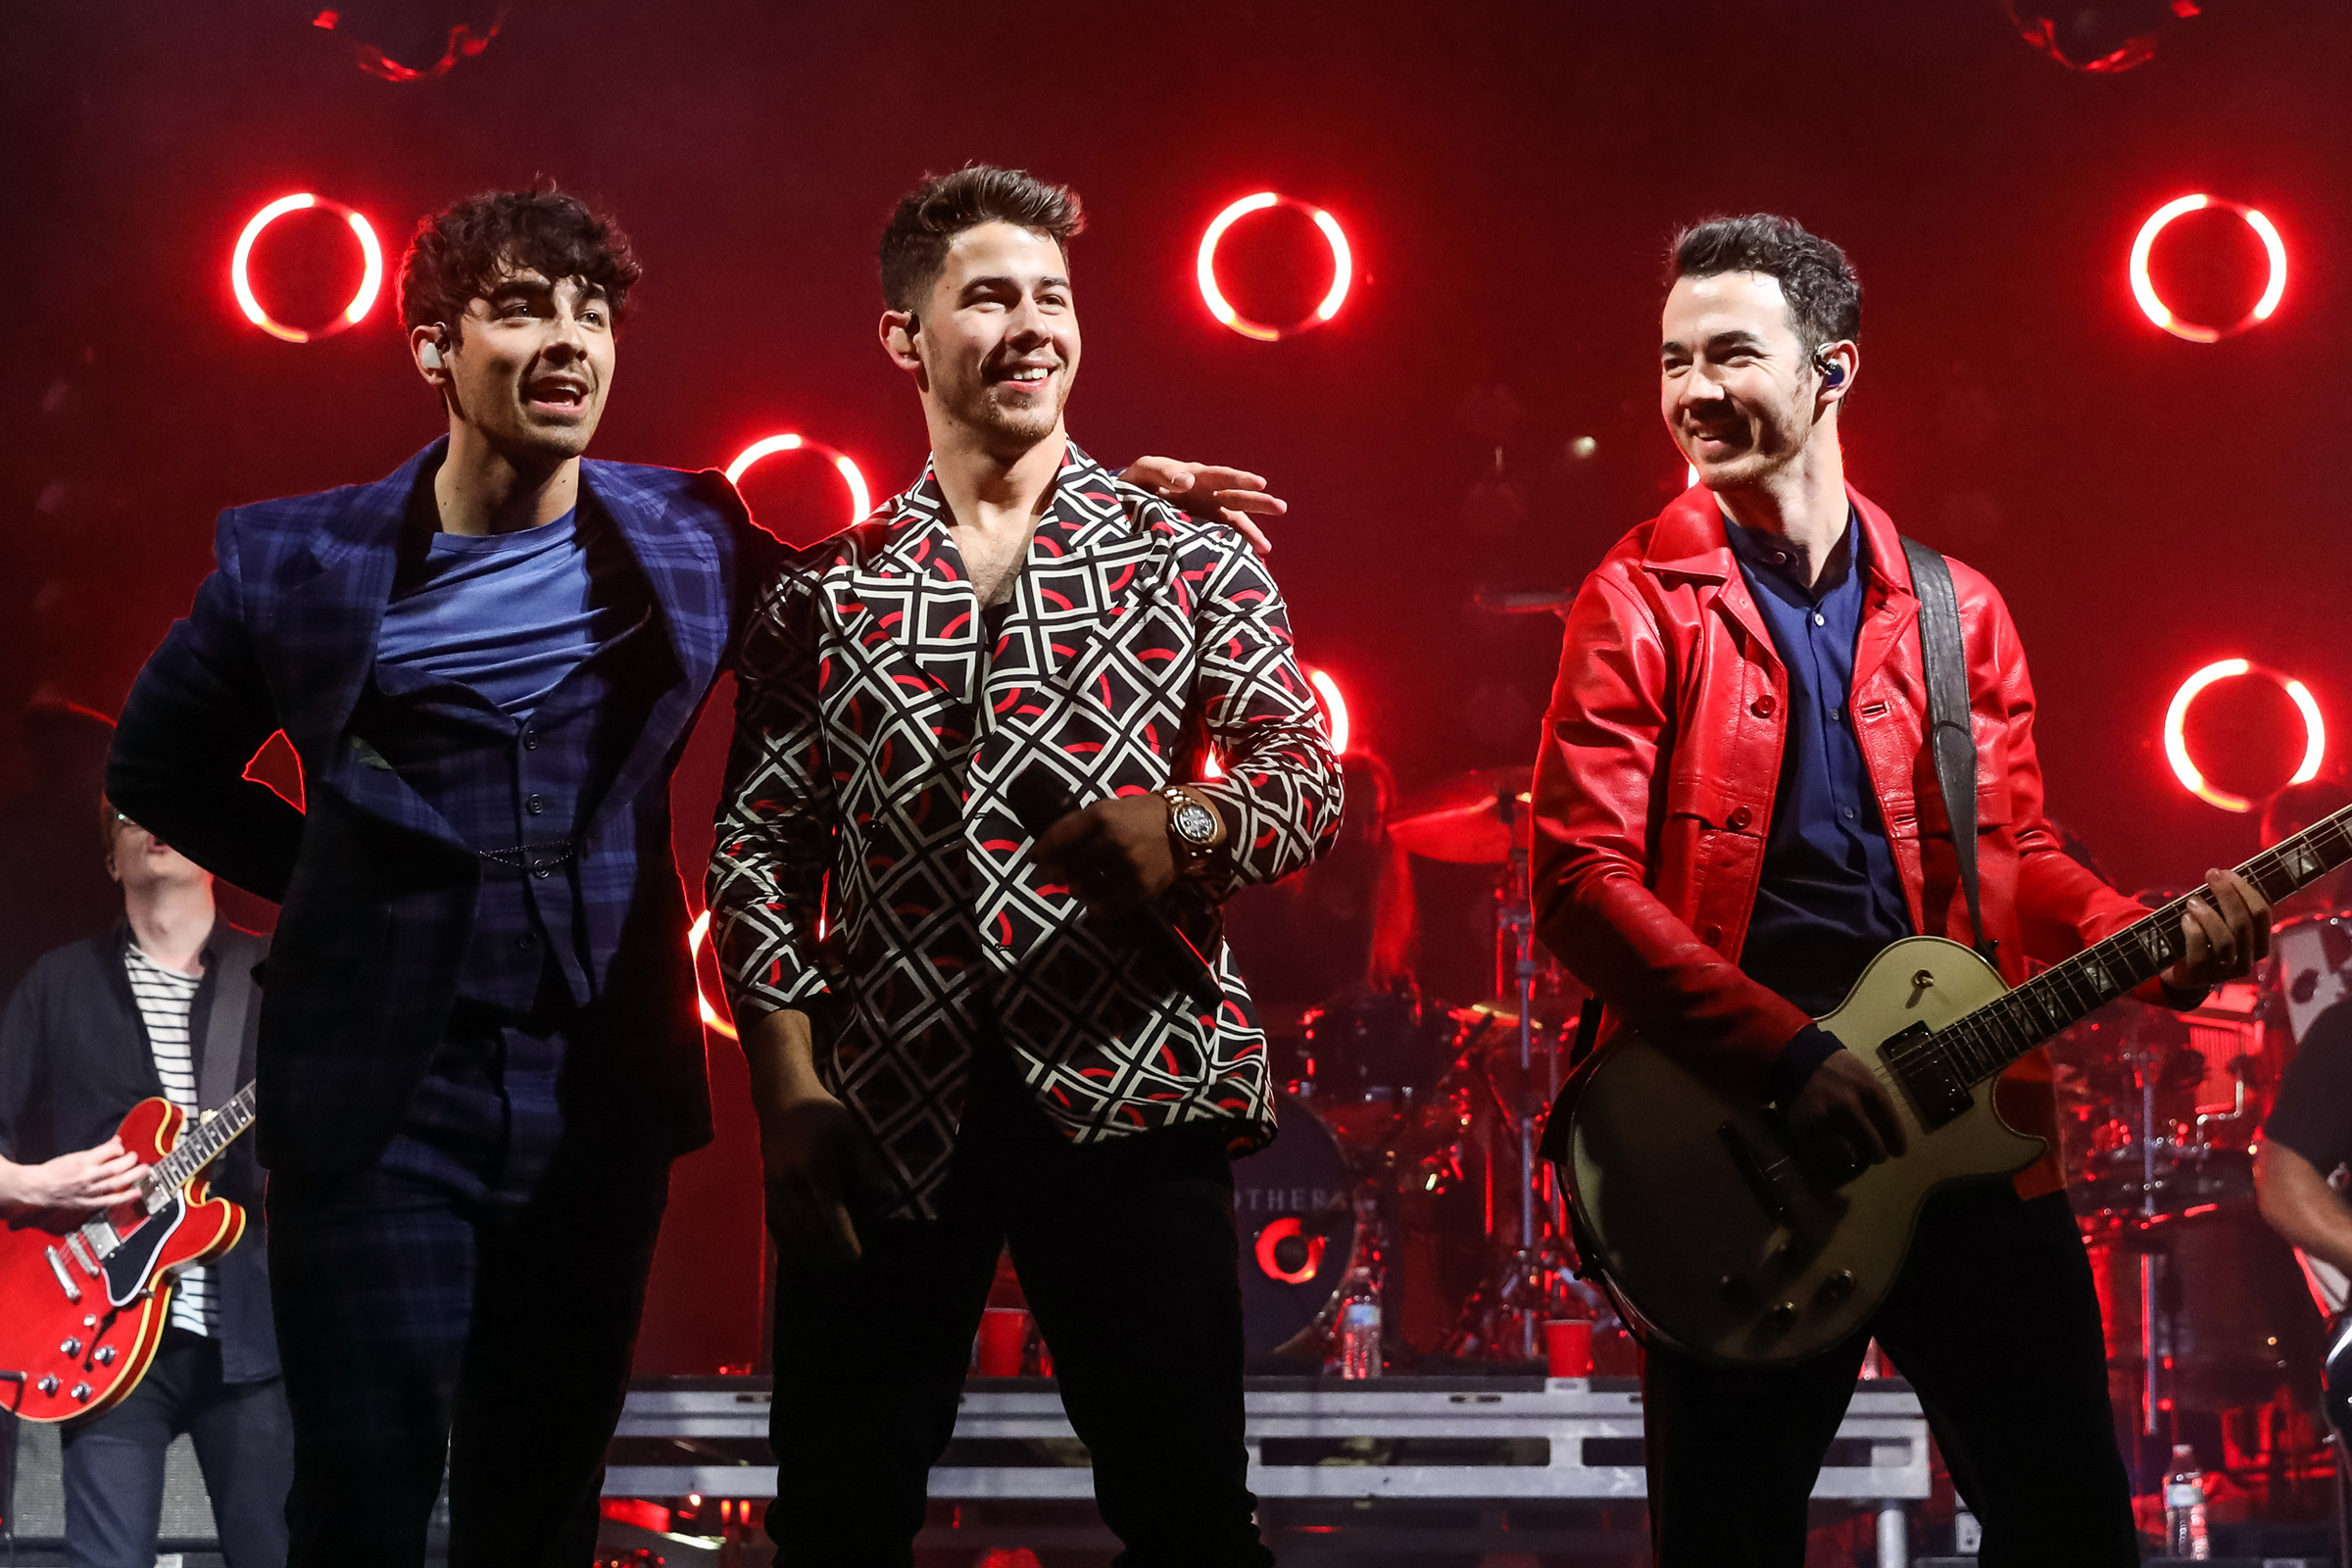 Jonas Brothers Announce First Album in 10 Years 'Happiness Begins'